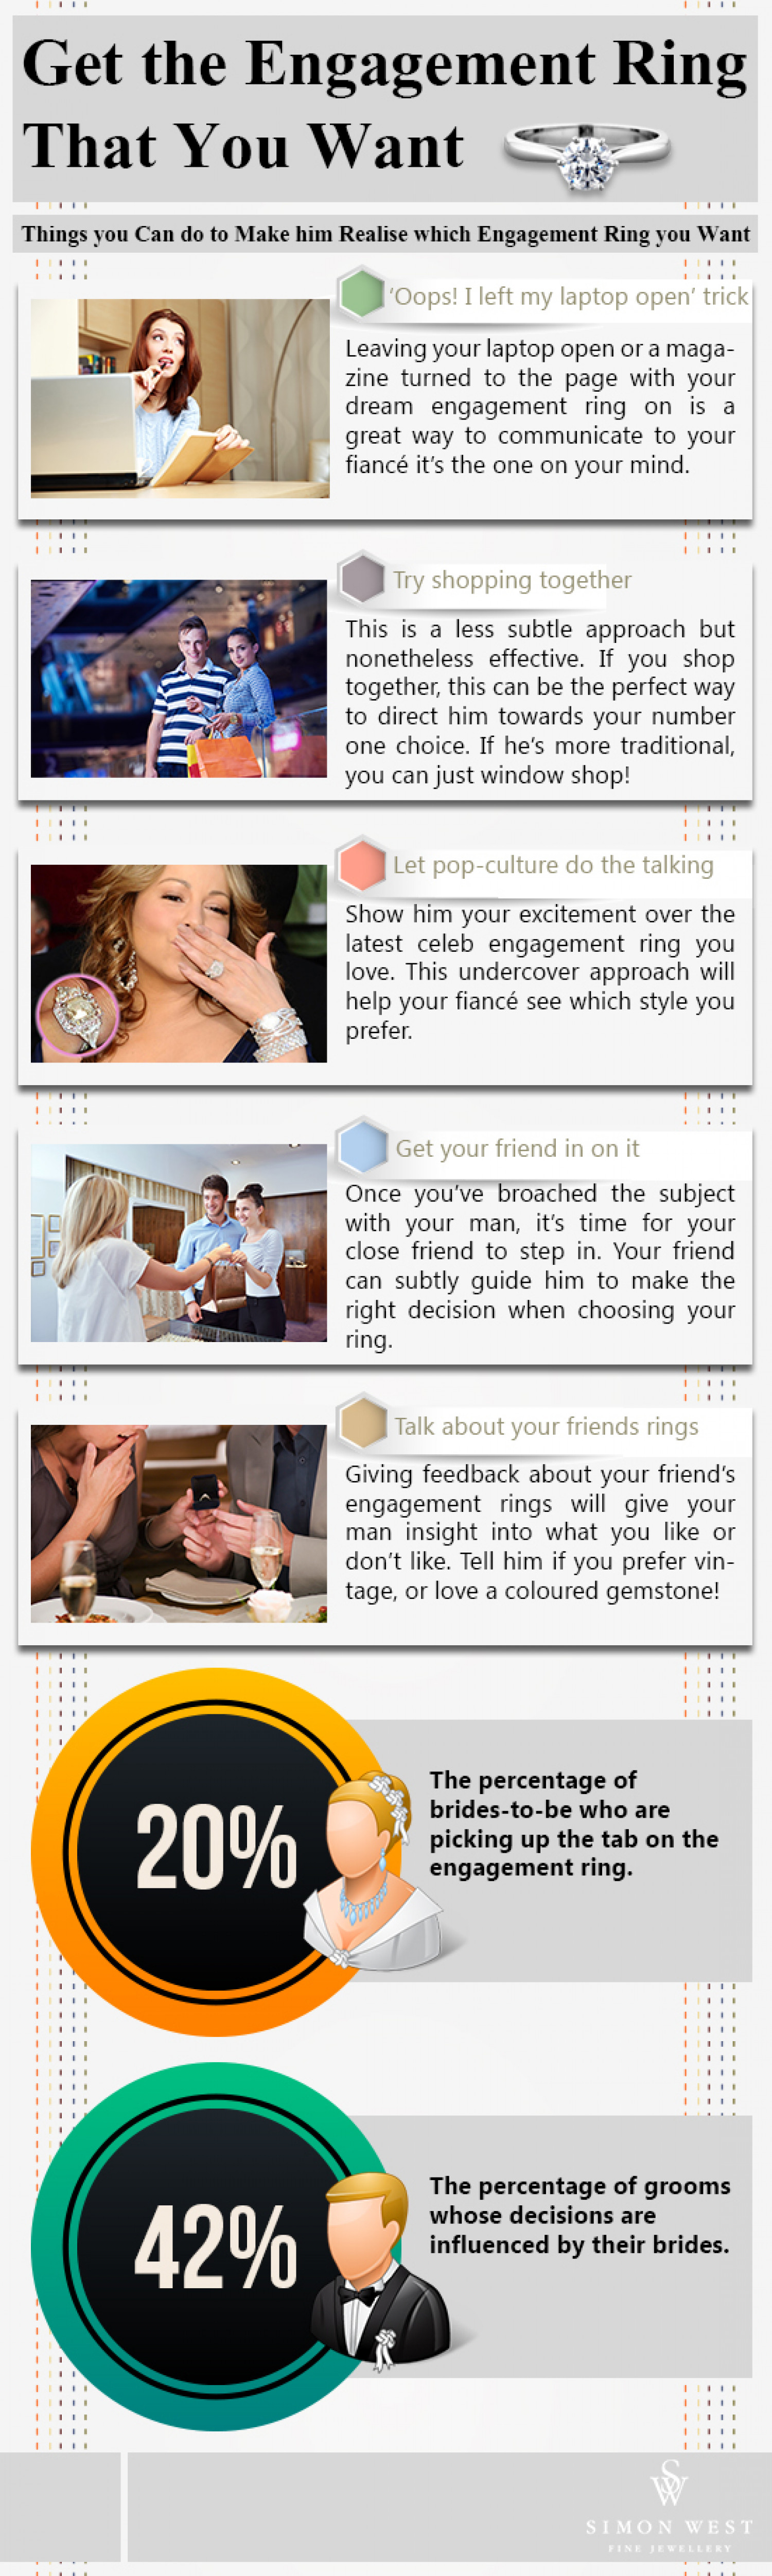 5 Ways To Make Him Realise Which Engagement Ring You Want  Infographic